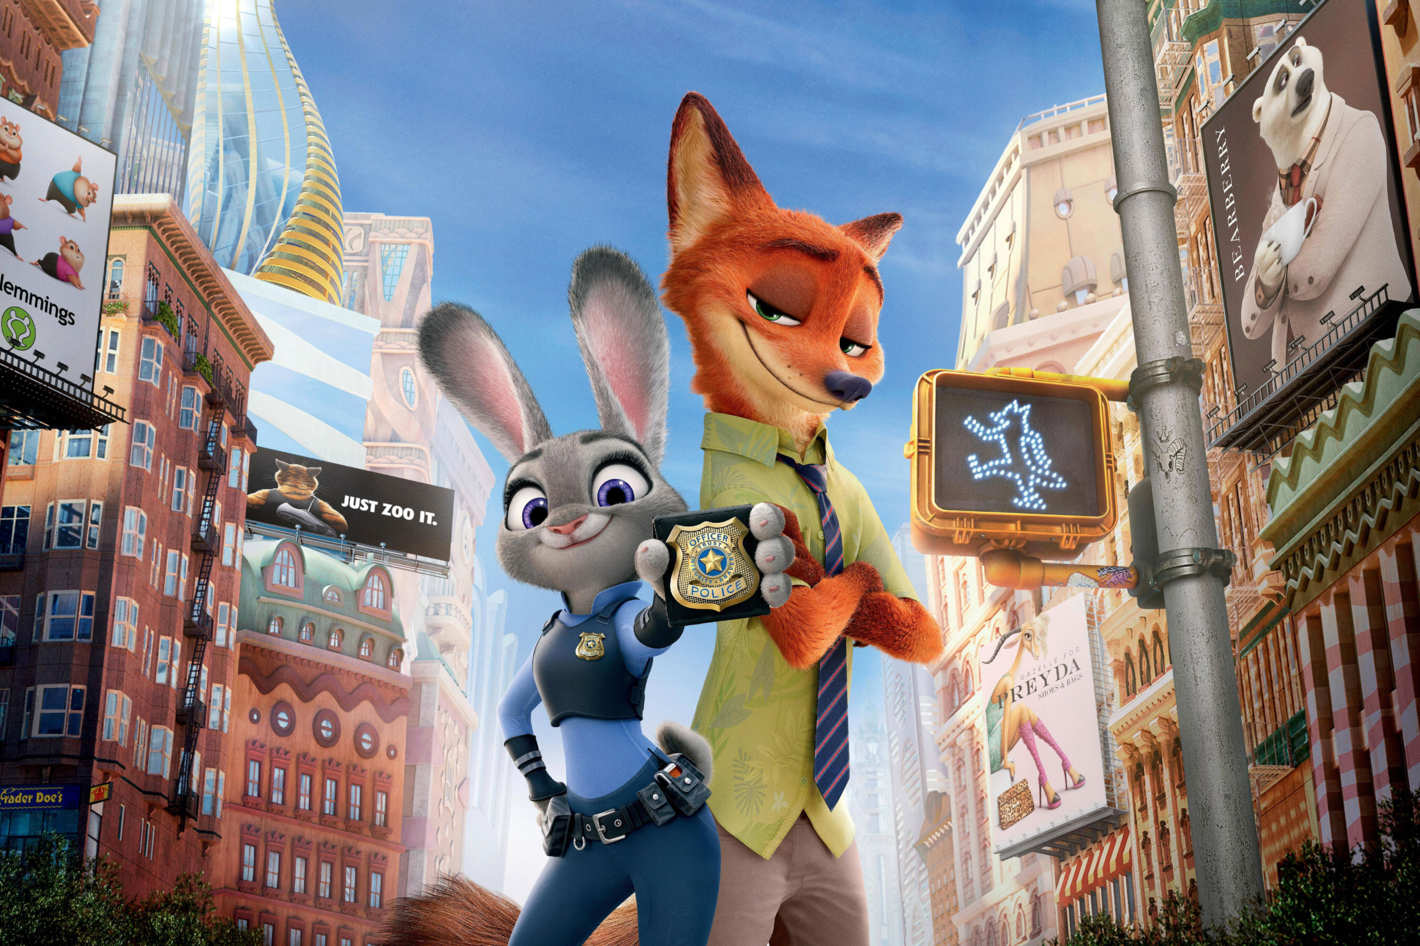 Officer Judy Hopps (voiced by Ginnifer Goodwin) and fox confidence trickster Nick Wilde (voiced by Jason Bateman) in Zootopia (2016)